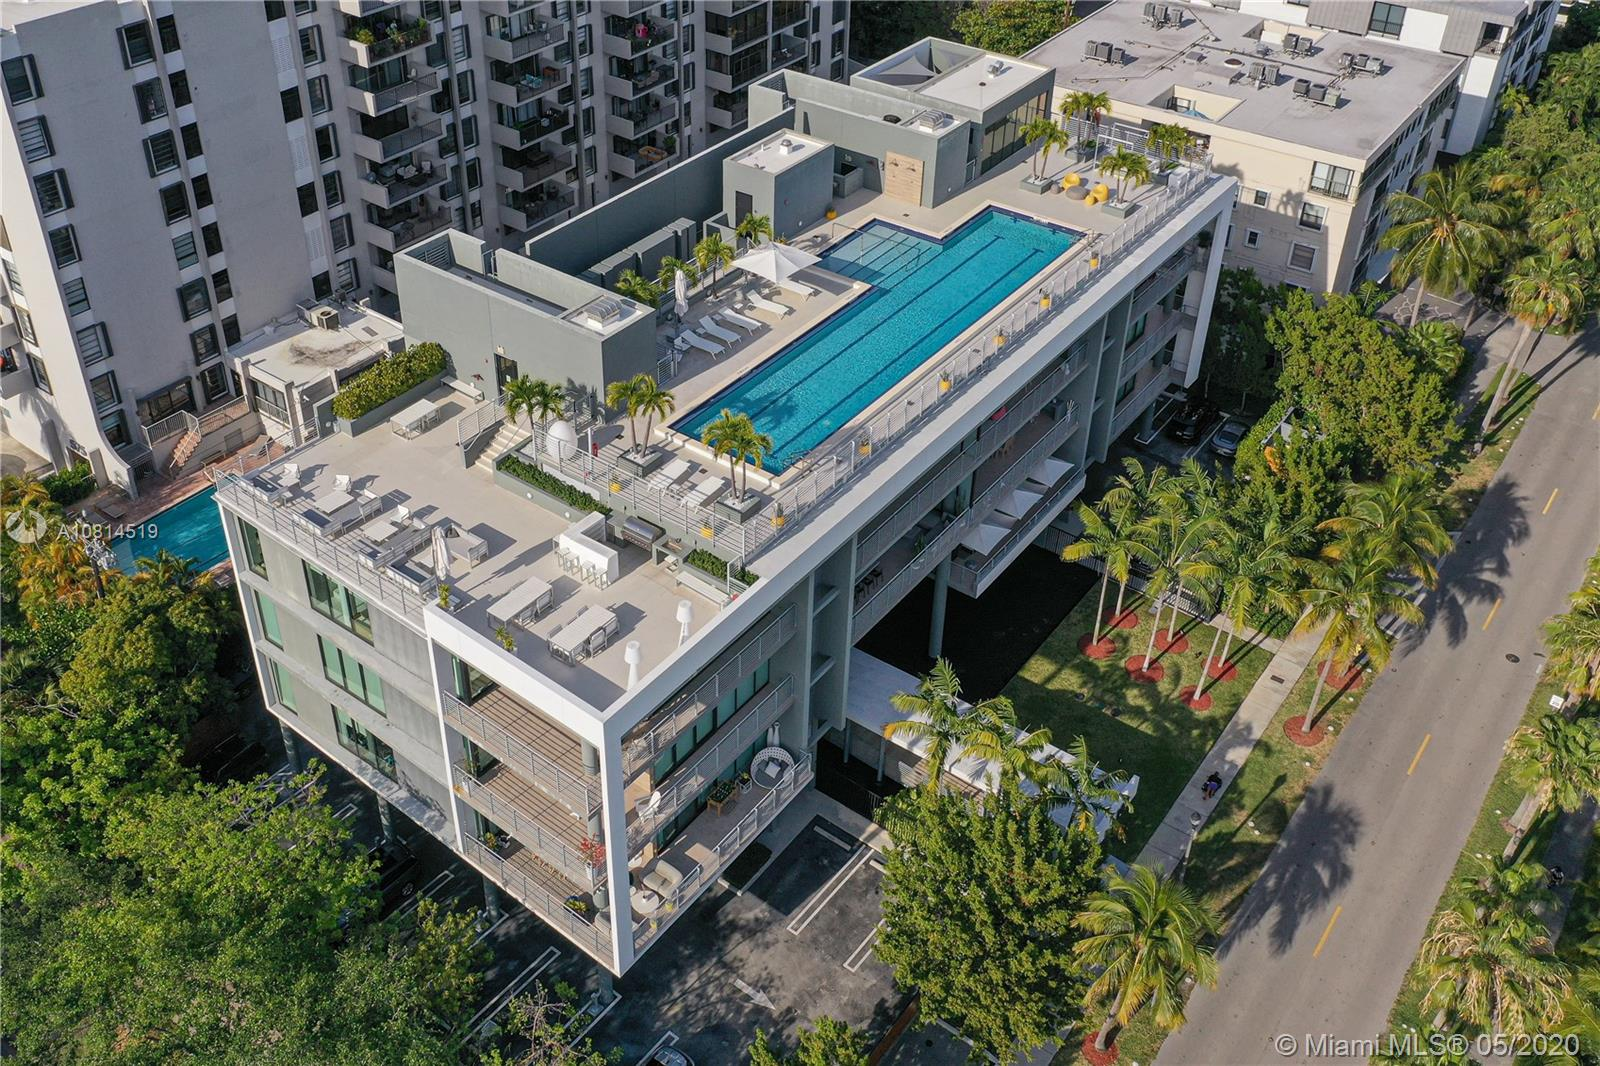 State-of-the-Art new construction boutique building in Key Biscayne. 3 Beds, 3 Baths and a guest bath. Enjoy an open floor plan with gourmet kitchen, spacious living room, modern baths and fabulous terrace. 1 parking space, roof top pool, and gym.  Walk to the beach, restaurants and shops. Rented now, an opportunity for investors.